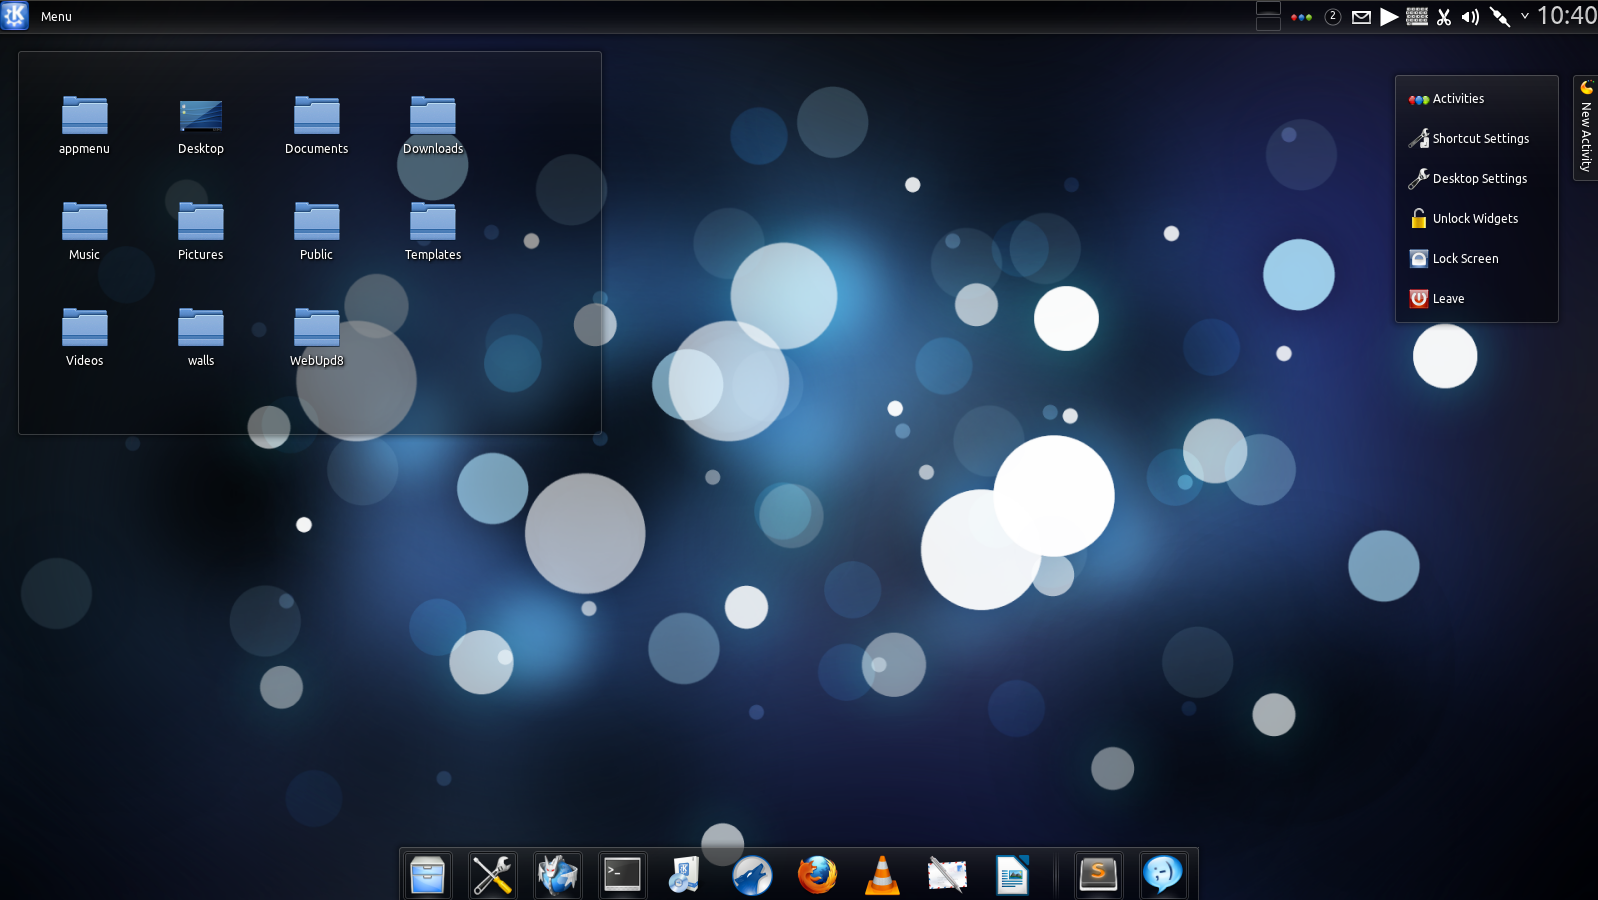 Download Ronak, The Chakra Archimedes Plasma Theme [KDE] ~ Web Upd8